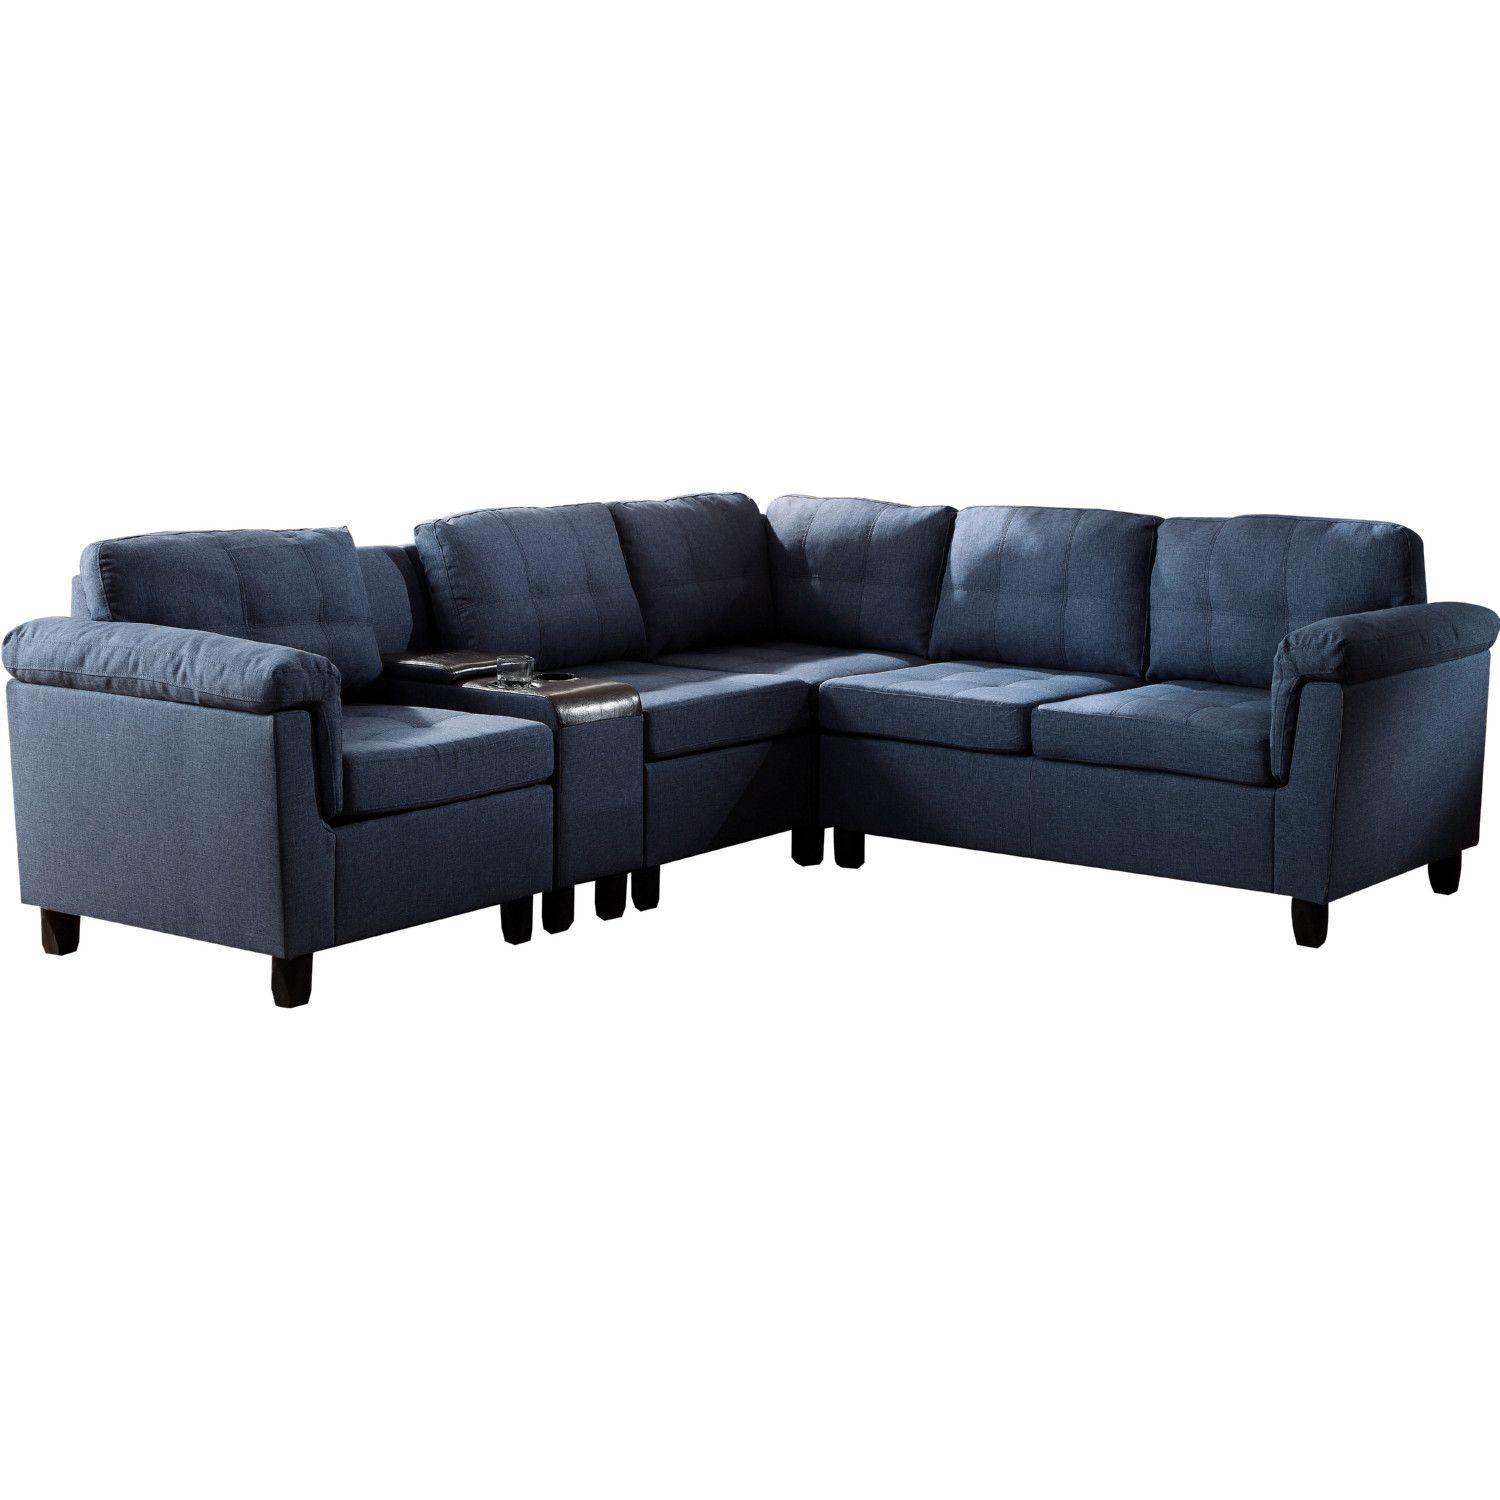 Prime Cleavon Sectional Sofa W Console In Blue Linen Espresso Alphanode Cool Chair Designs And Ideas Alphanodeonline